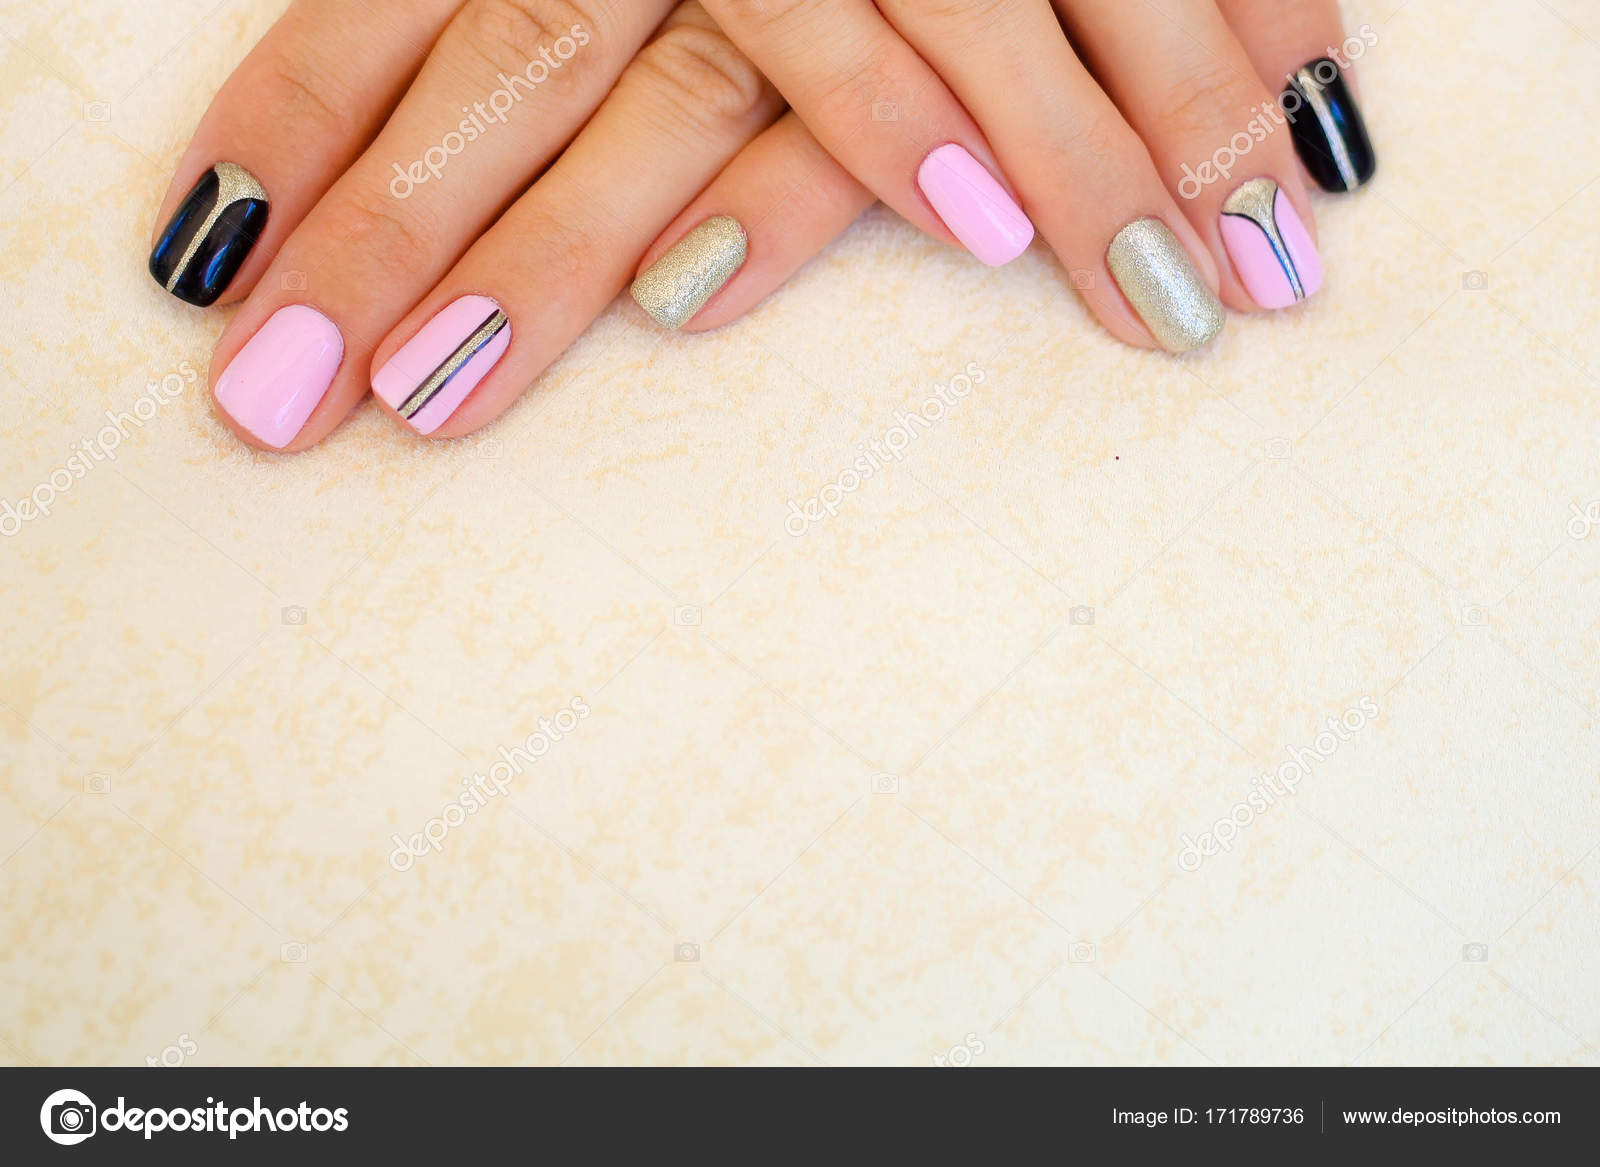 Natural nails, gel polish. Stylish Nails, Nailpolish. Nail art ...